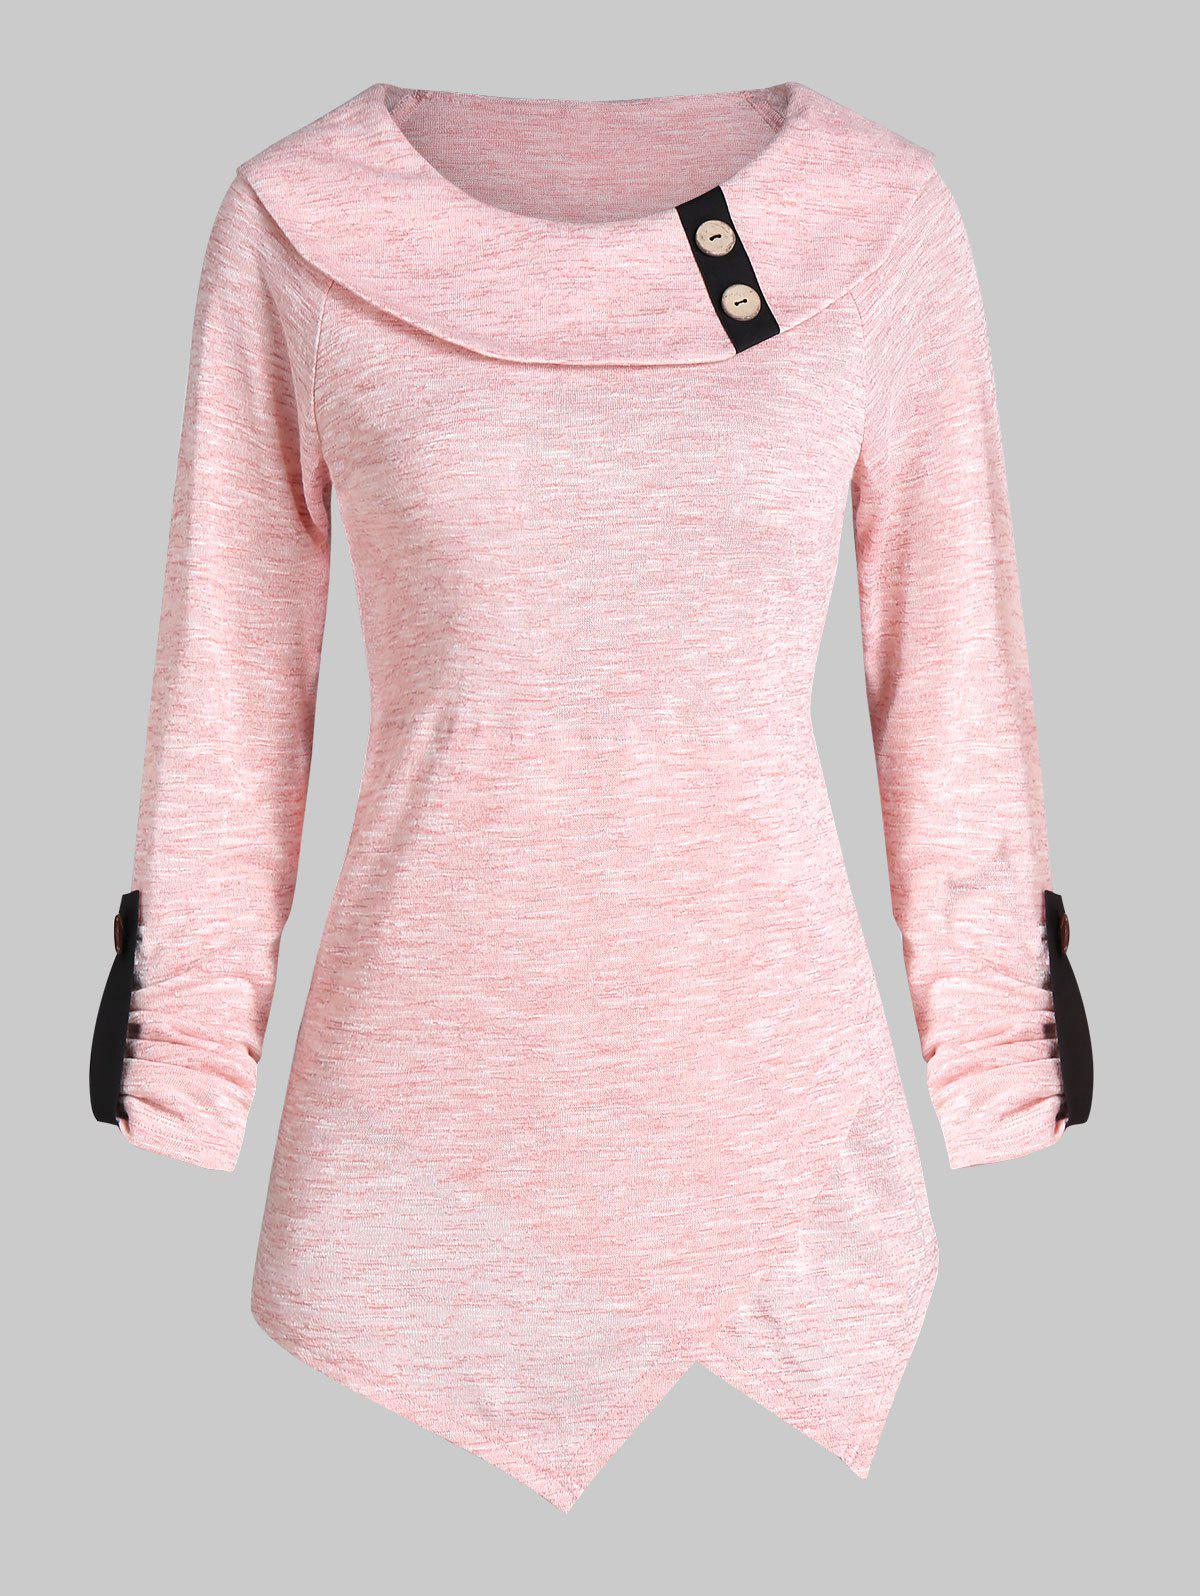 Button Space Dye Longline Long Sleeve Top - PIG PINK L